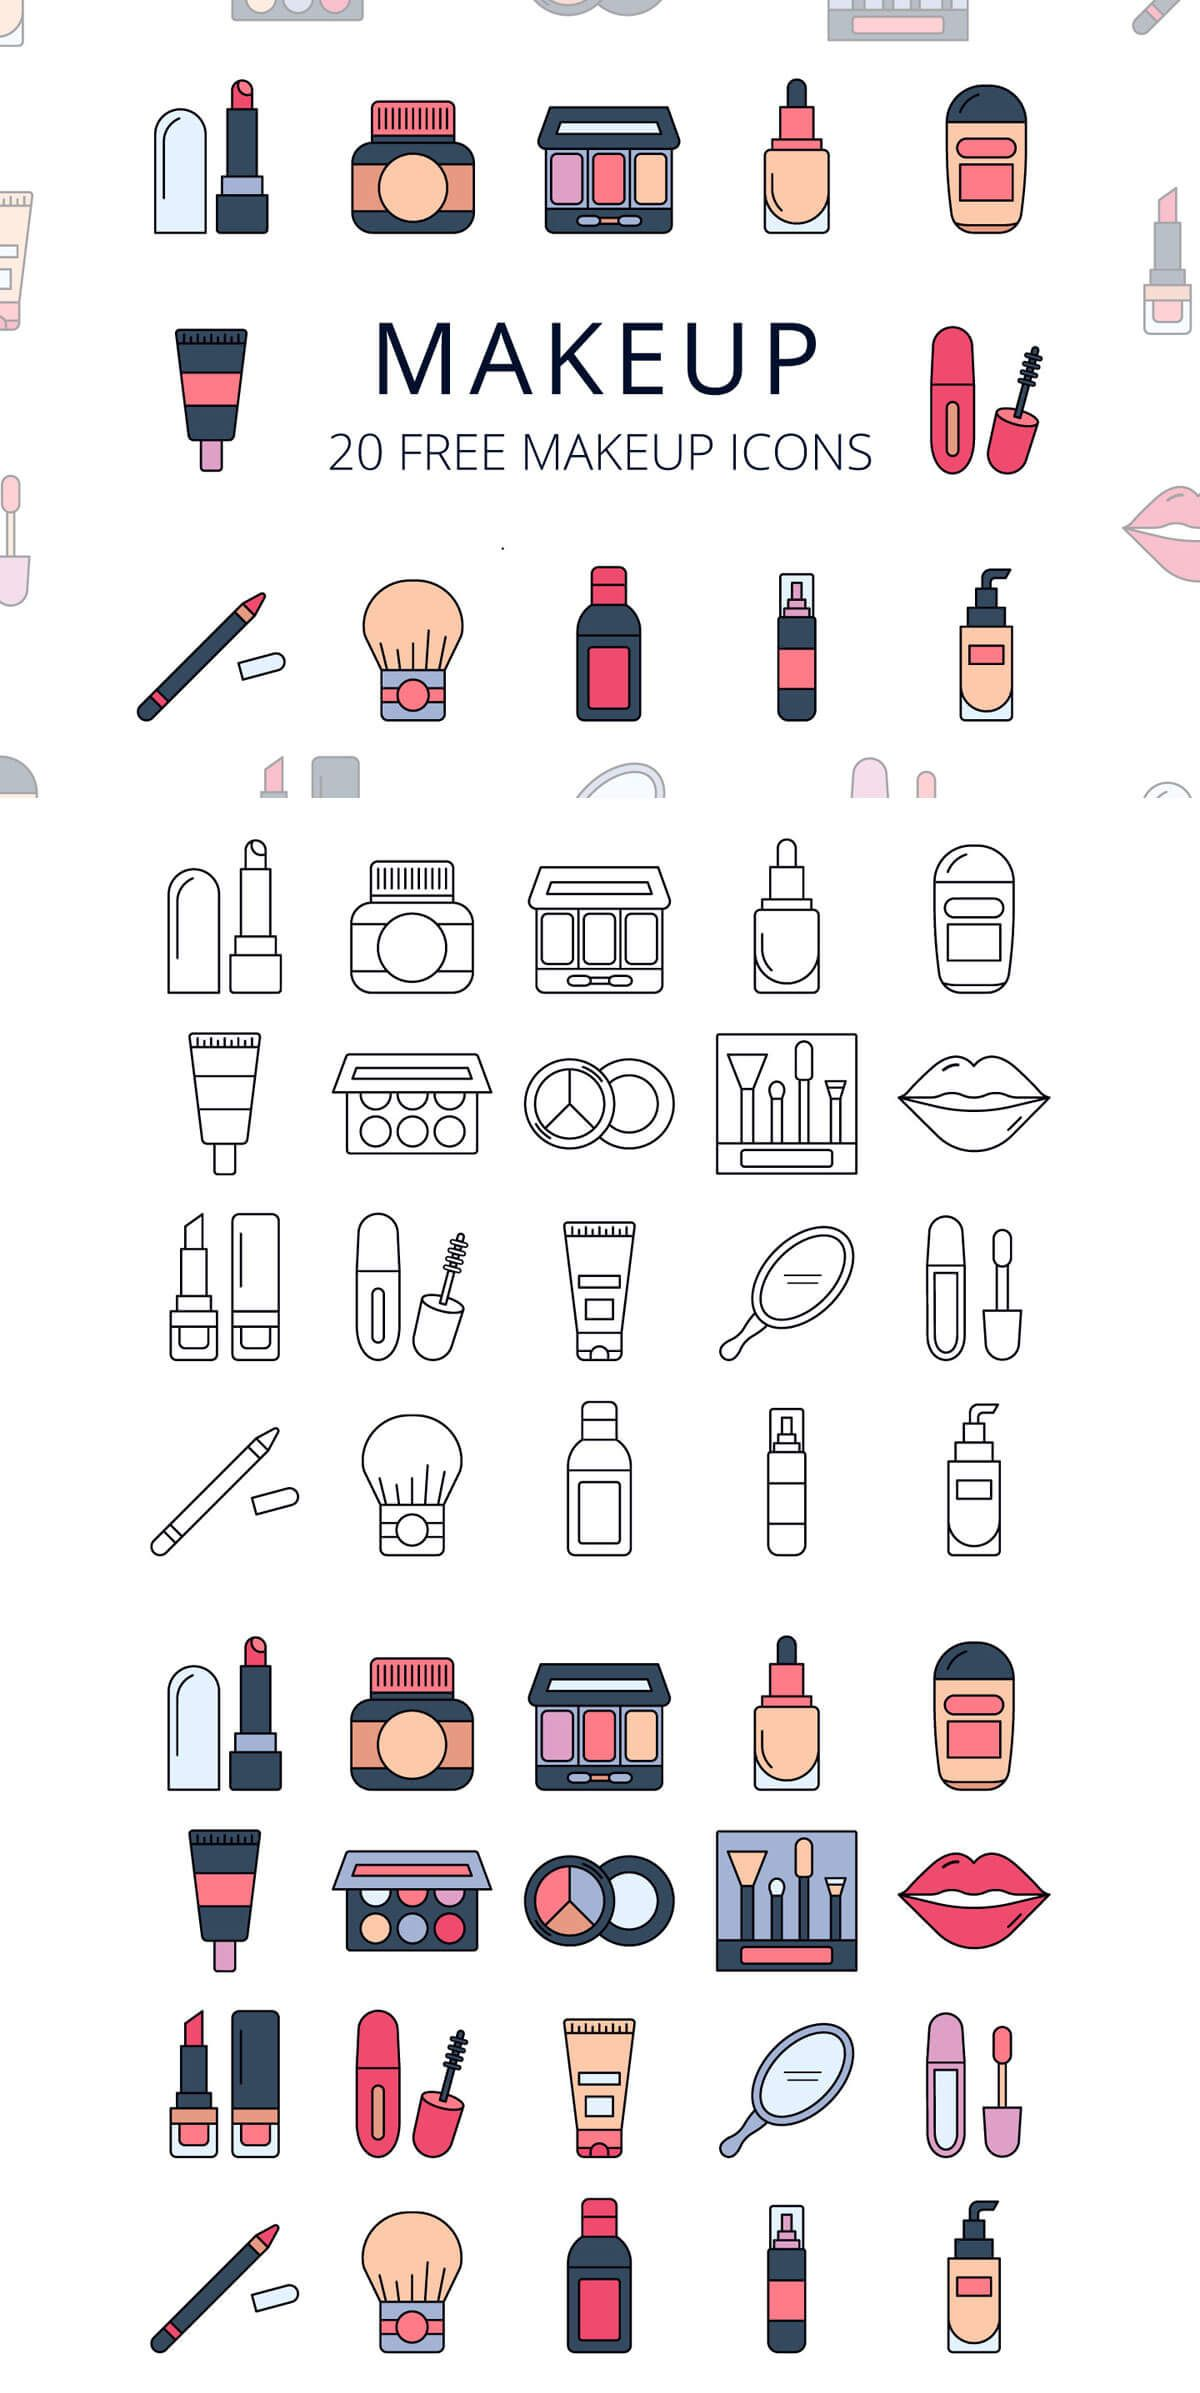 Free Makeup Vector Icon Set Icon set, Free makeup